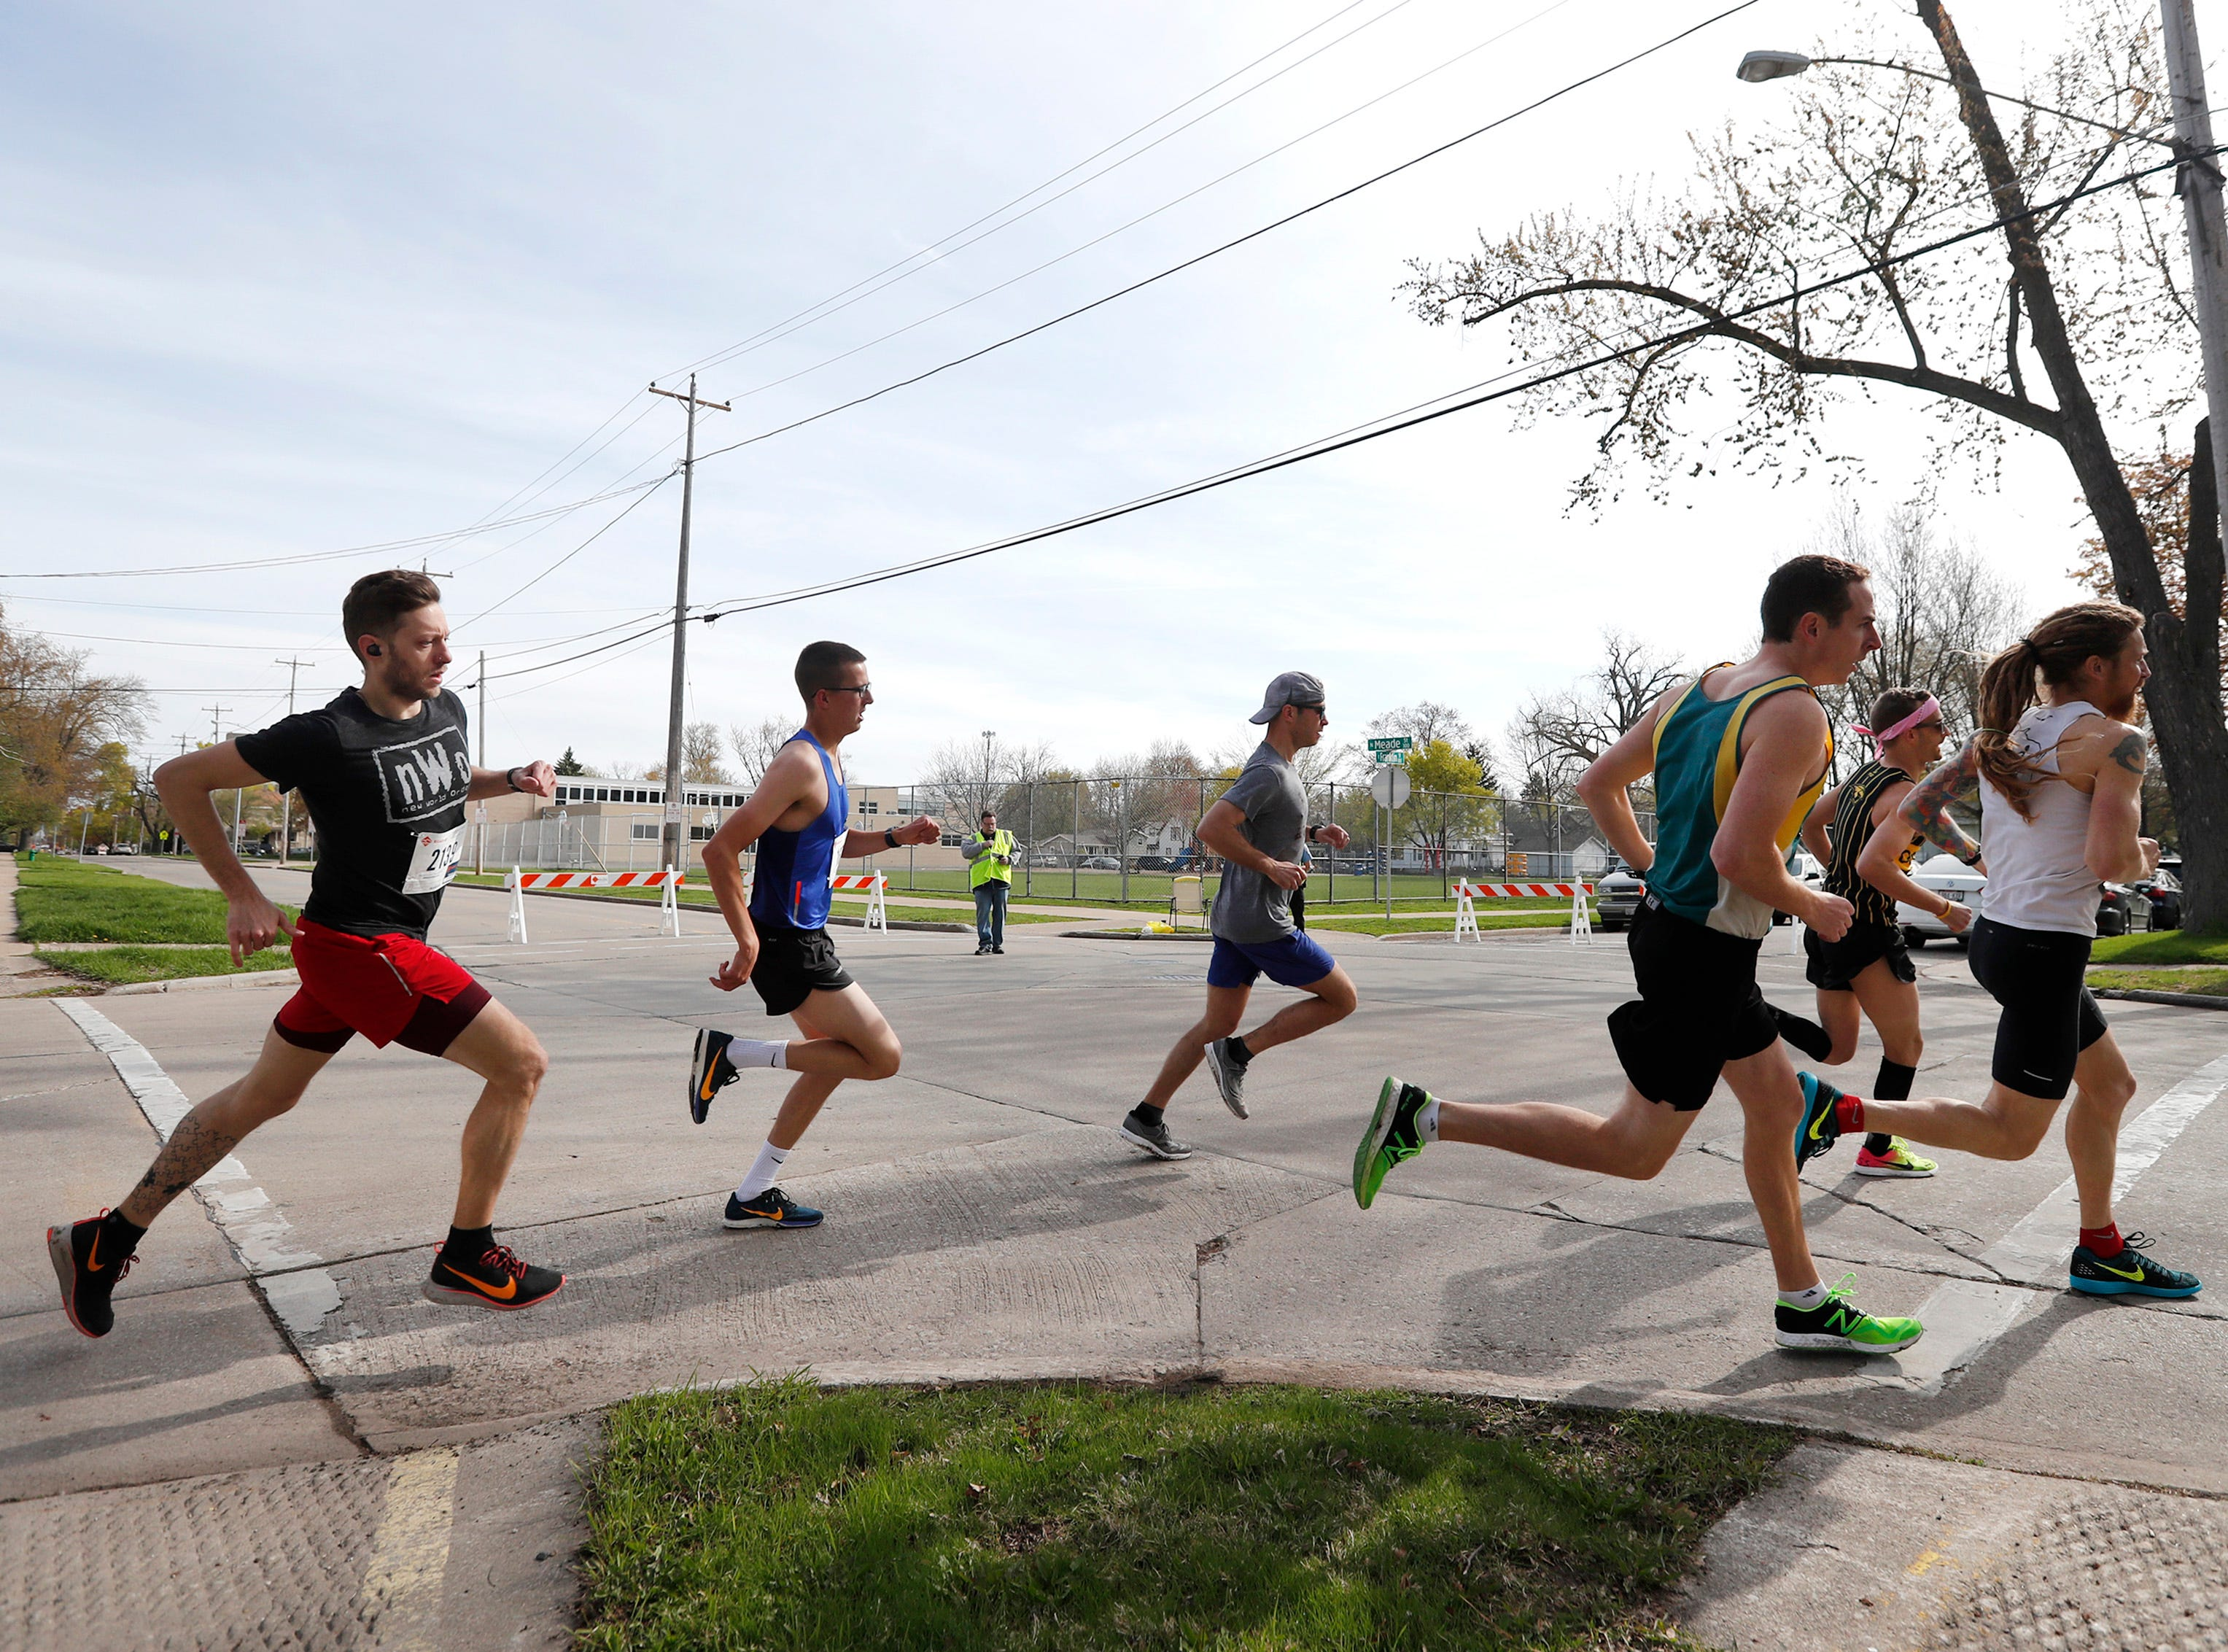 A group of runners make their first turn onto Meade Street during the Sole Burner 5K Walk-Run Saturday, May 11, 2019, in Appleton, Wis. Danny Damiani/USA TODAY NETWORK-Wisconsin